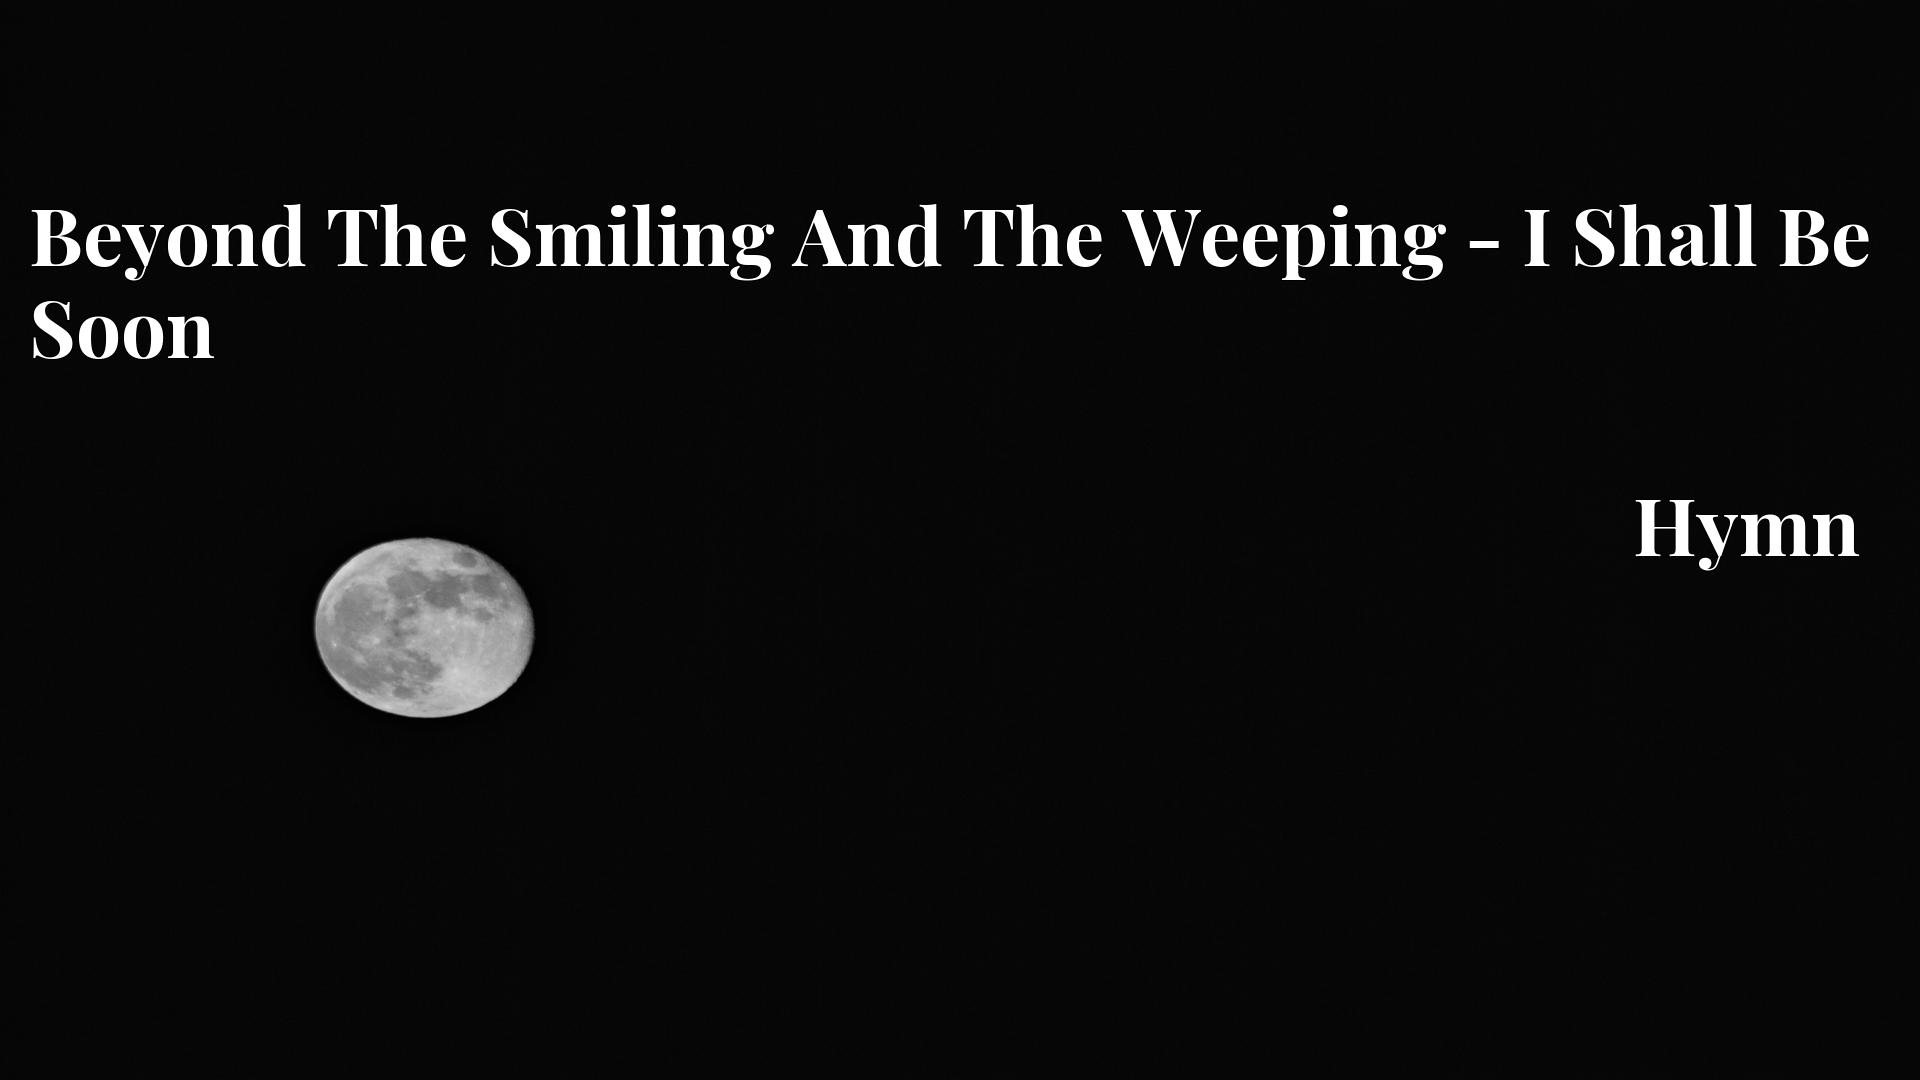 Beyond The Smiling And The Weeping - I Shall Be Soon Hymn